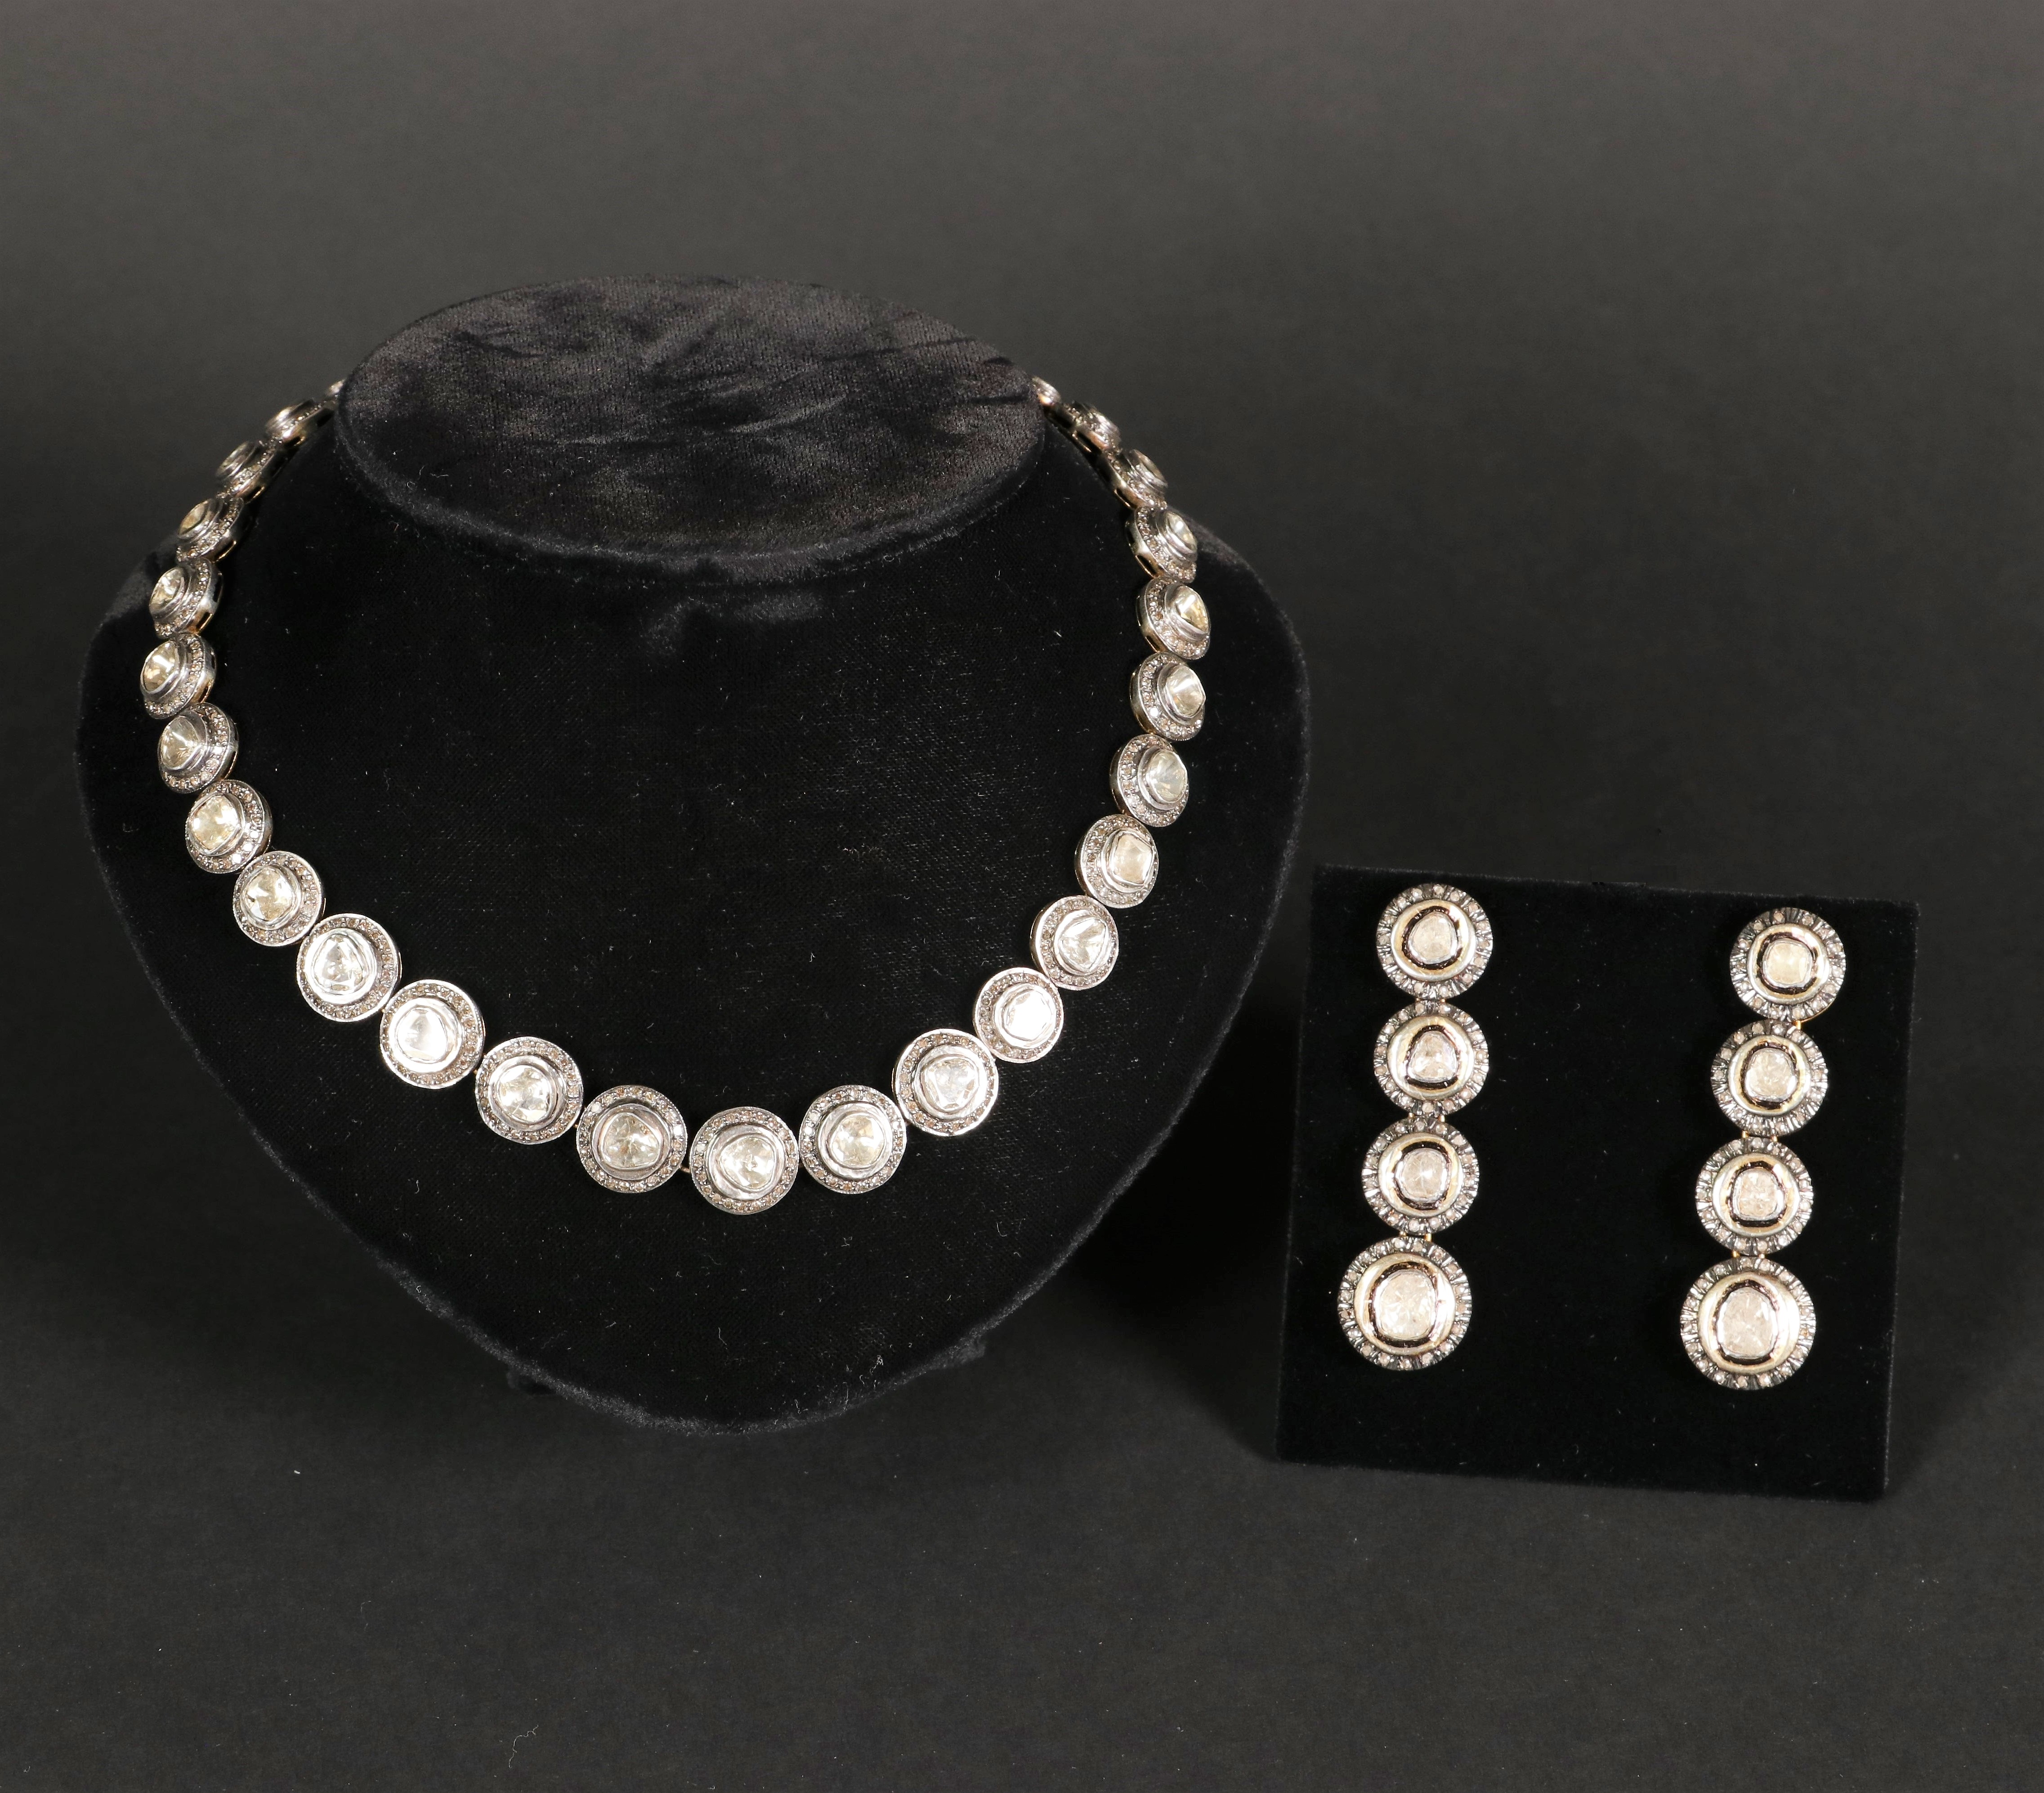 A Very Heavy Victorian Art Deco Diamond Necklace With Matching